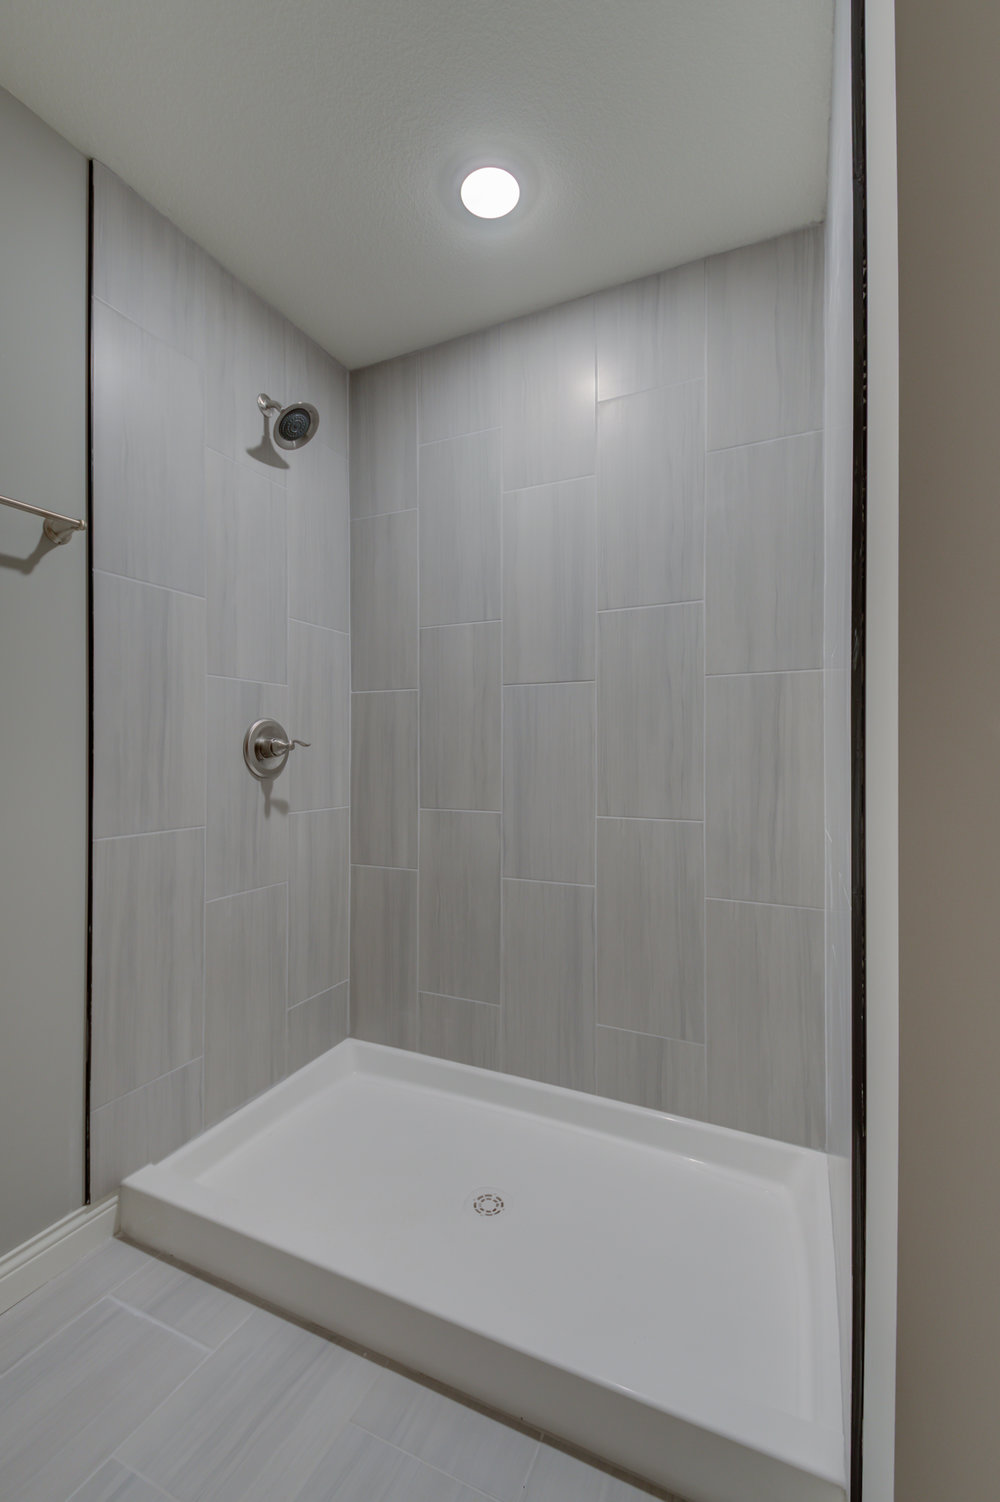 Tile_Shower_5835 Charlotte Dr-44.jpg